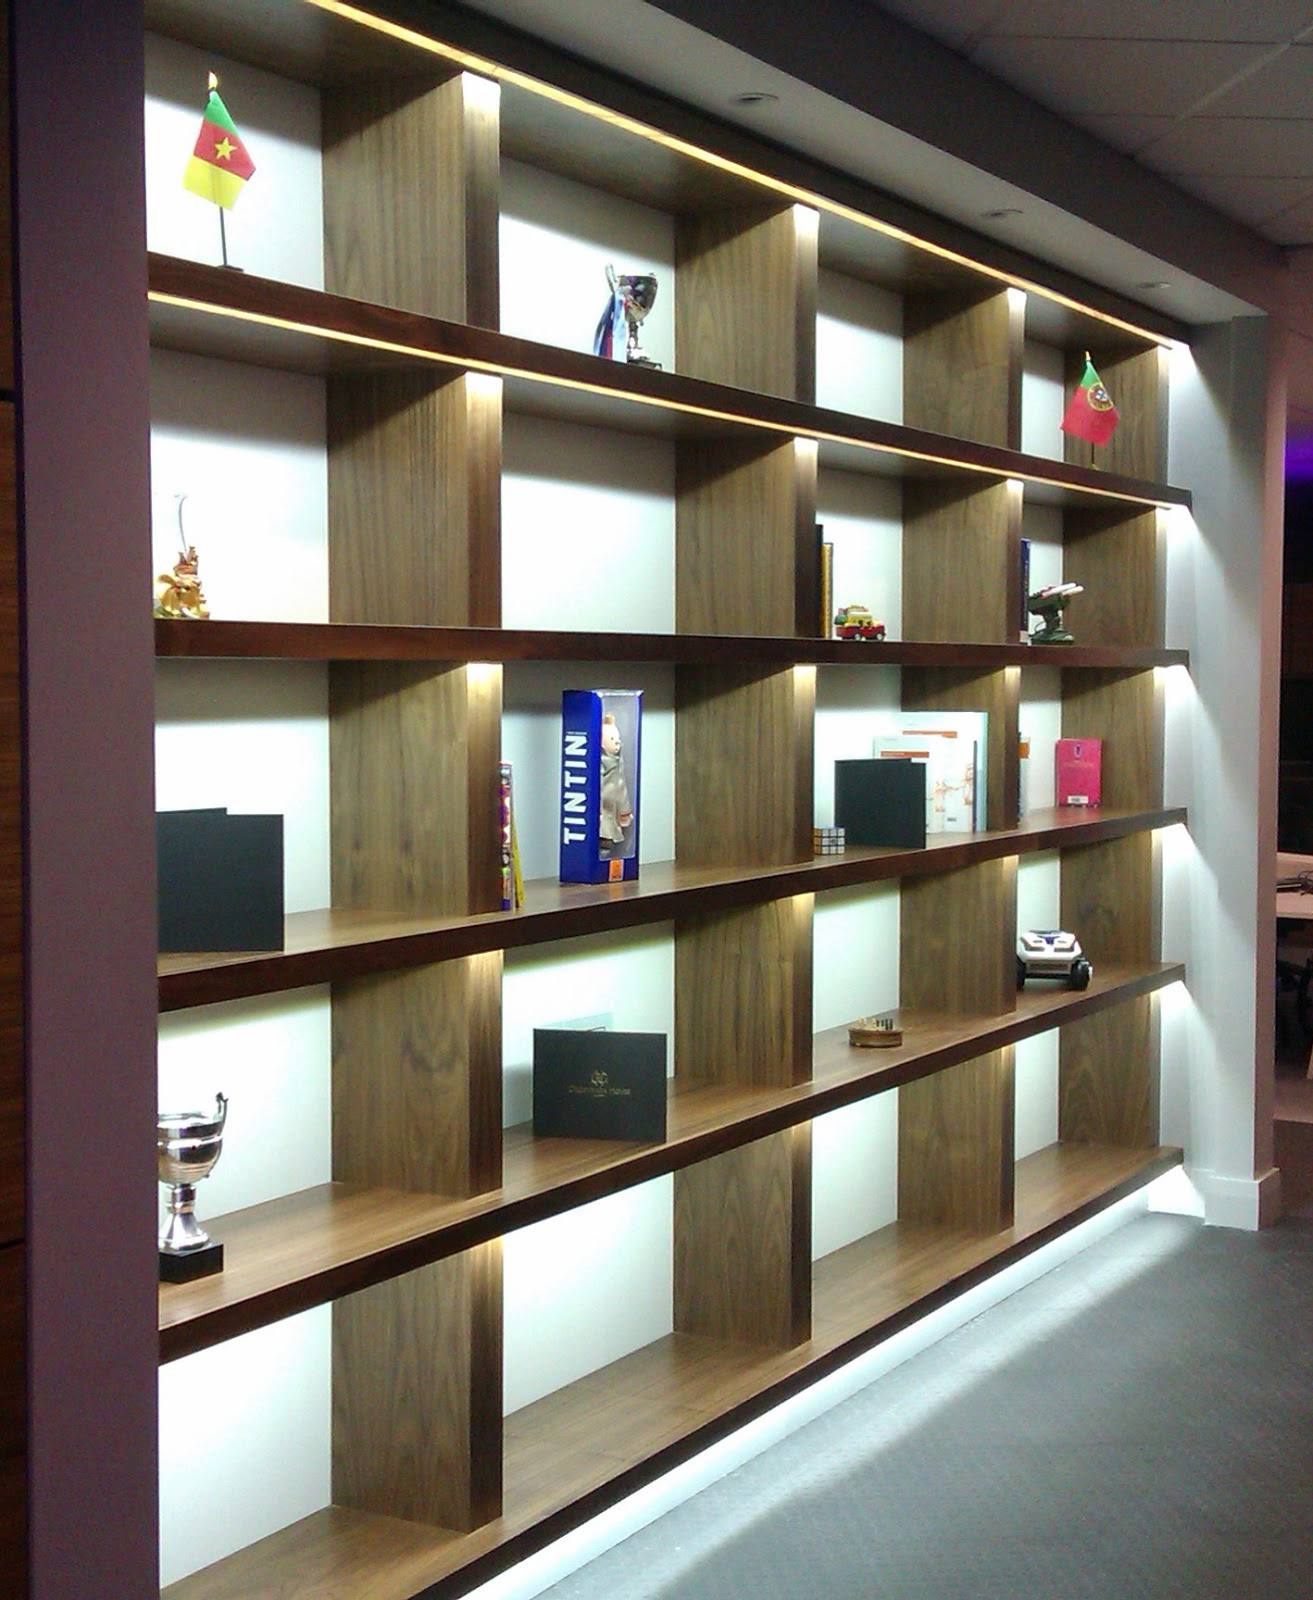 Bringing Your Bookshelves To Life With LED Tape